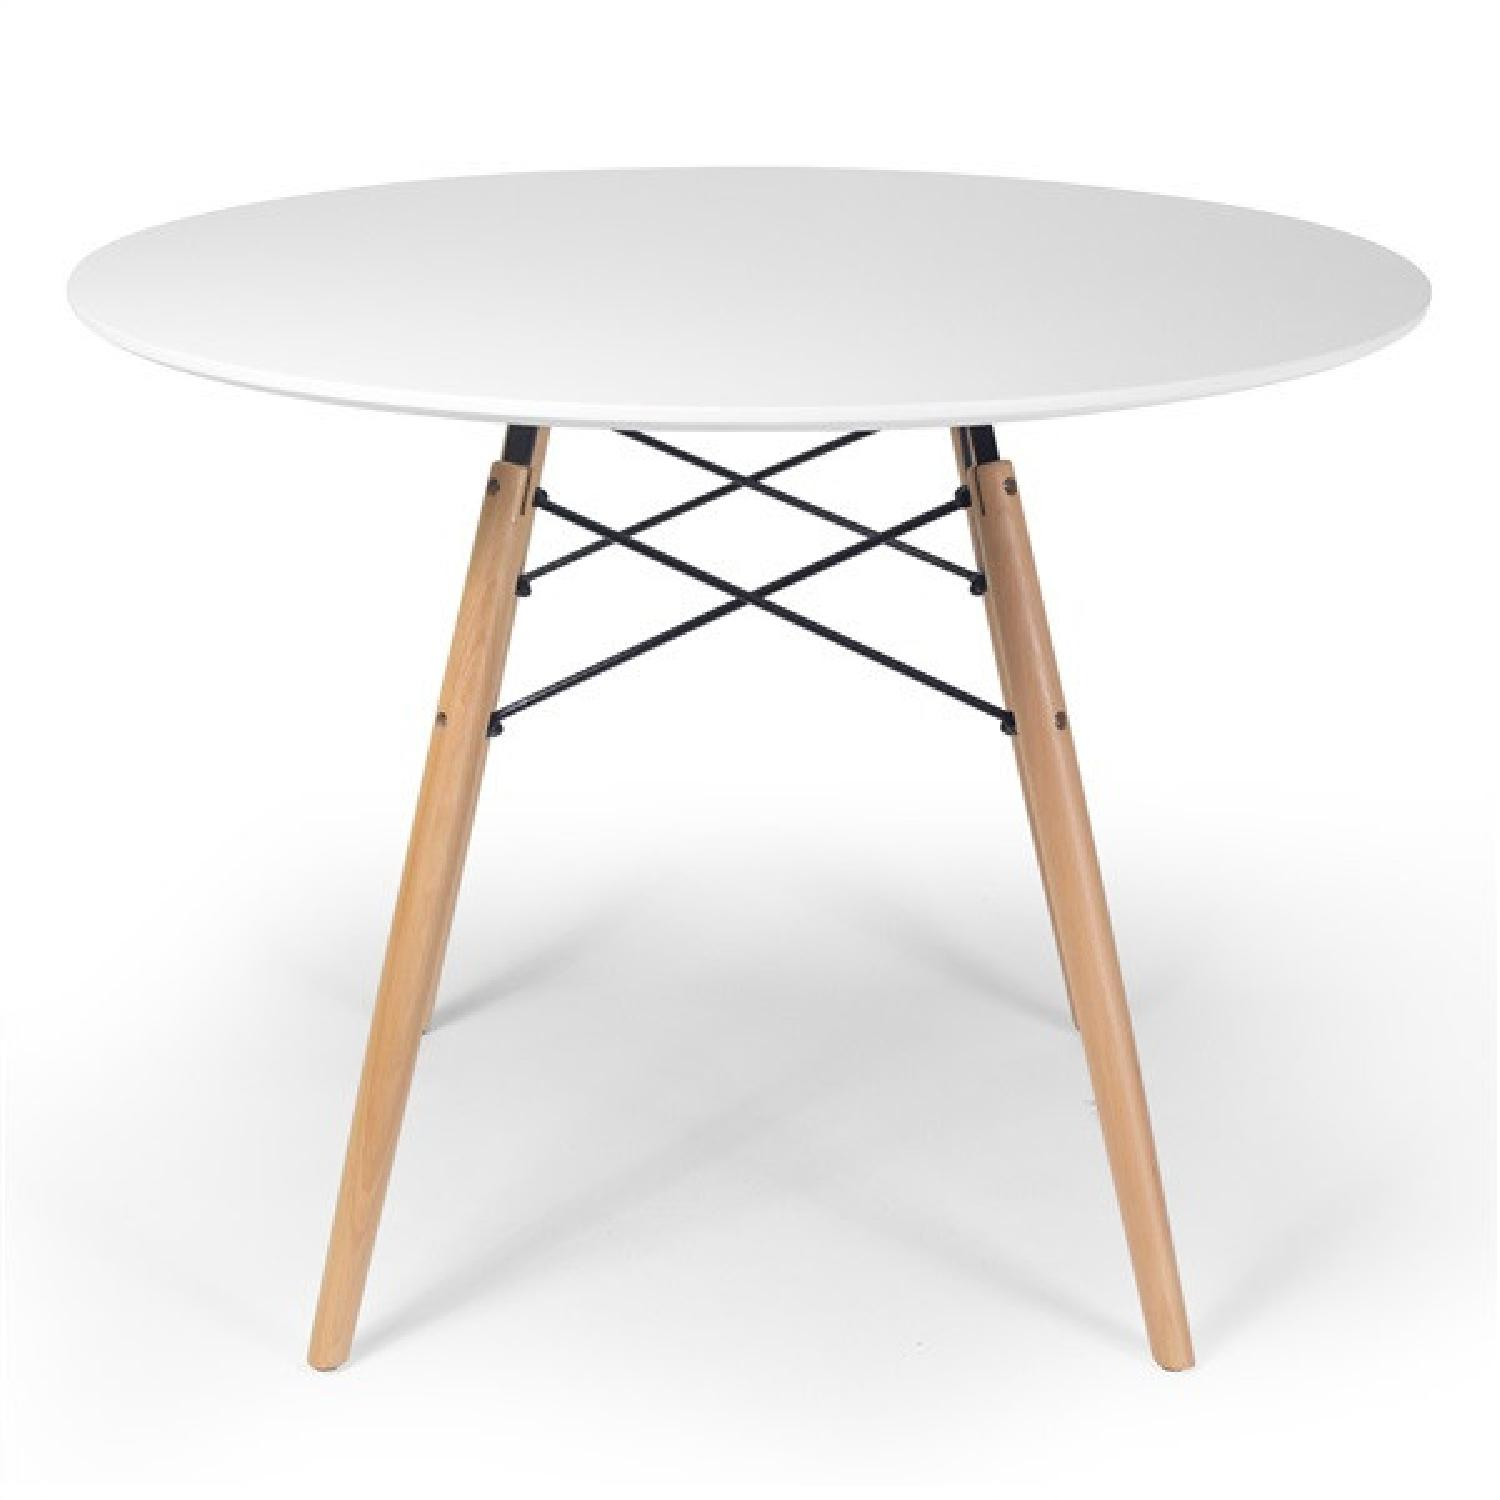 Eiffel Style Dining Table - image-0